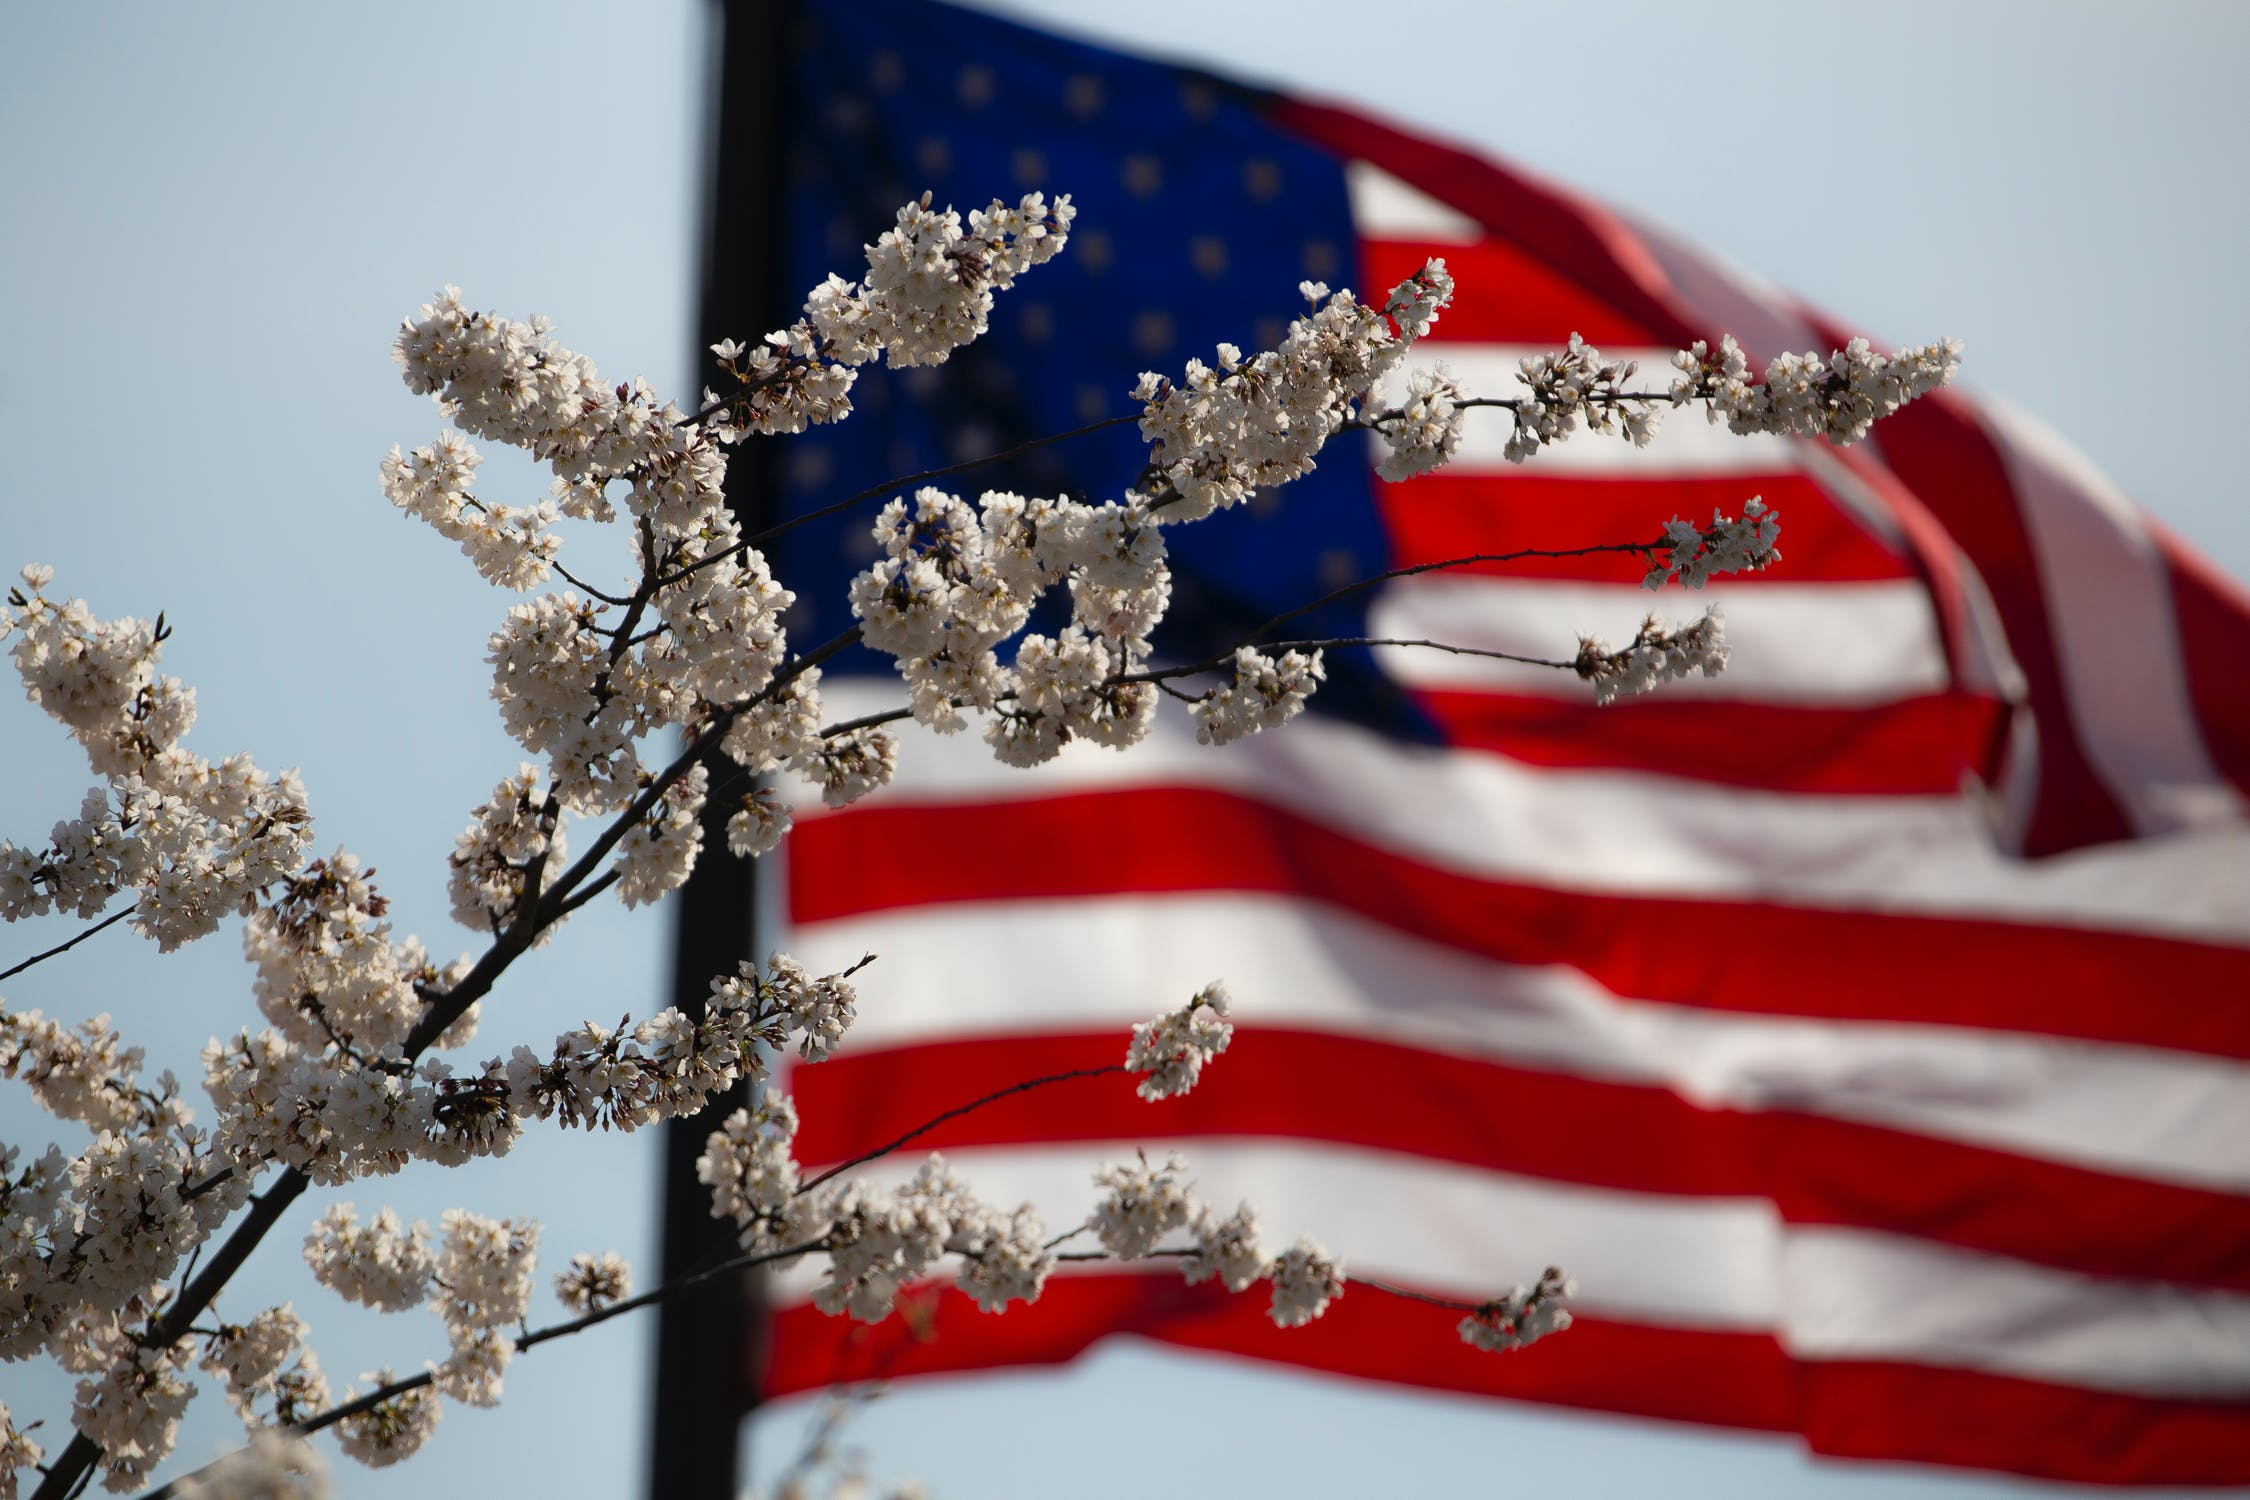 A picture of flowers with the American flag in the background